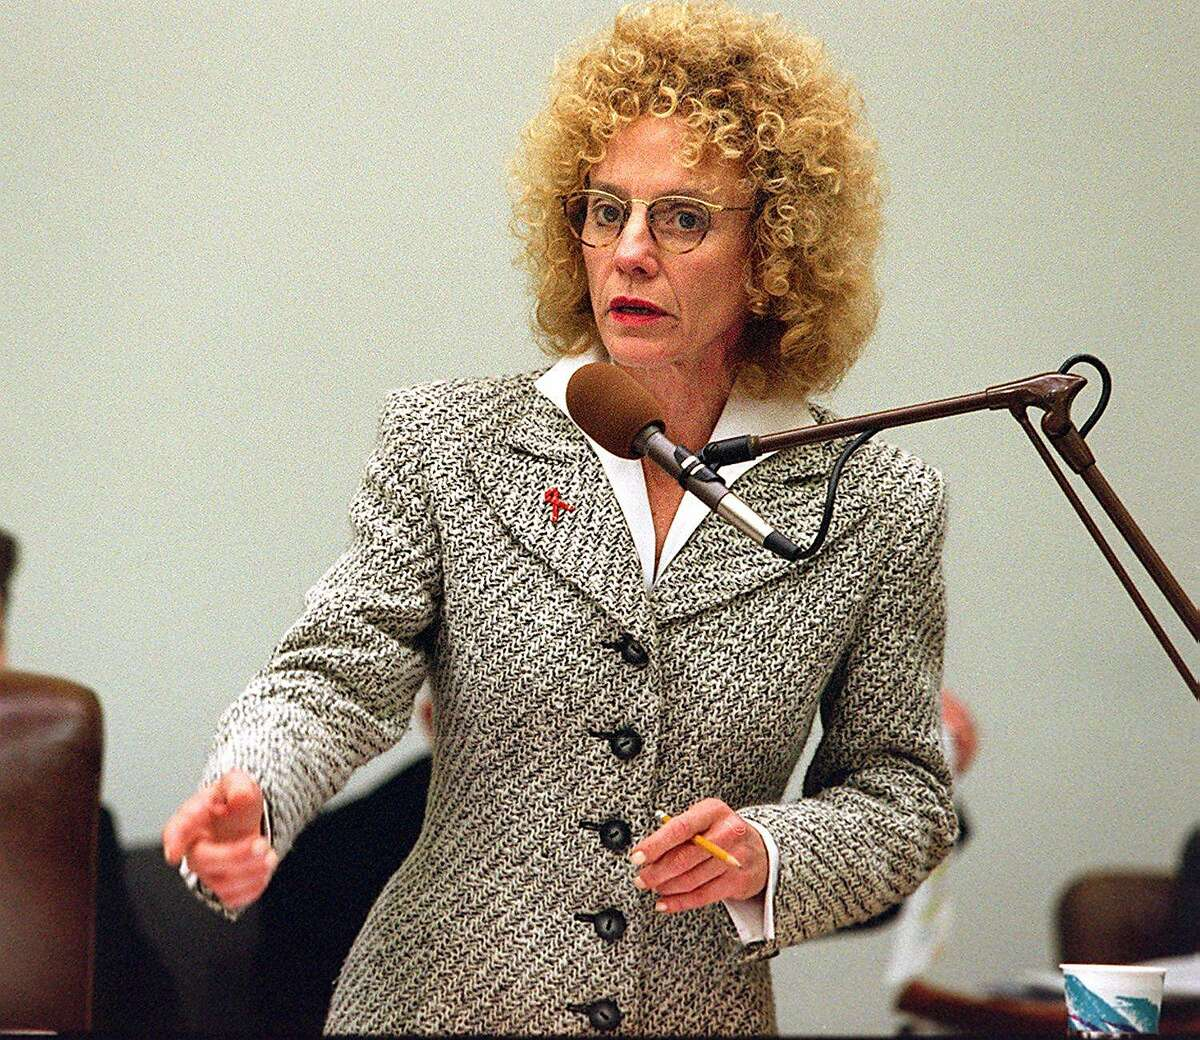 MIGDEN/C/29JAN96/CD/CD - SF Supervisor Carole Migden gives a speech on the Domestic Partnership Ceremonies ordinance she sponsored, which allows civil ceremonies to solemnize the existence of domestic partnerships. San Francisco Chronicle photo by Chris Stewart also ran: 4/29/98, 10/27/02